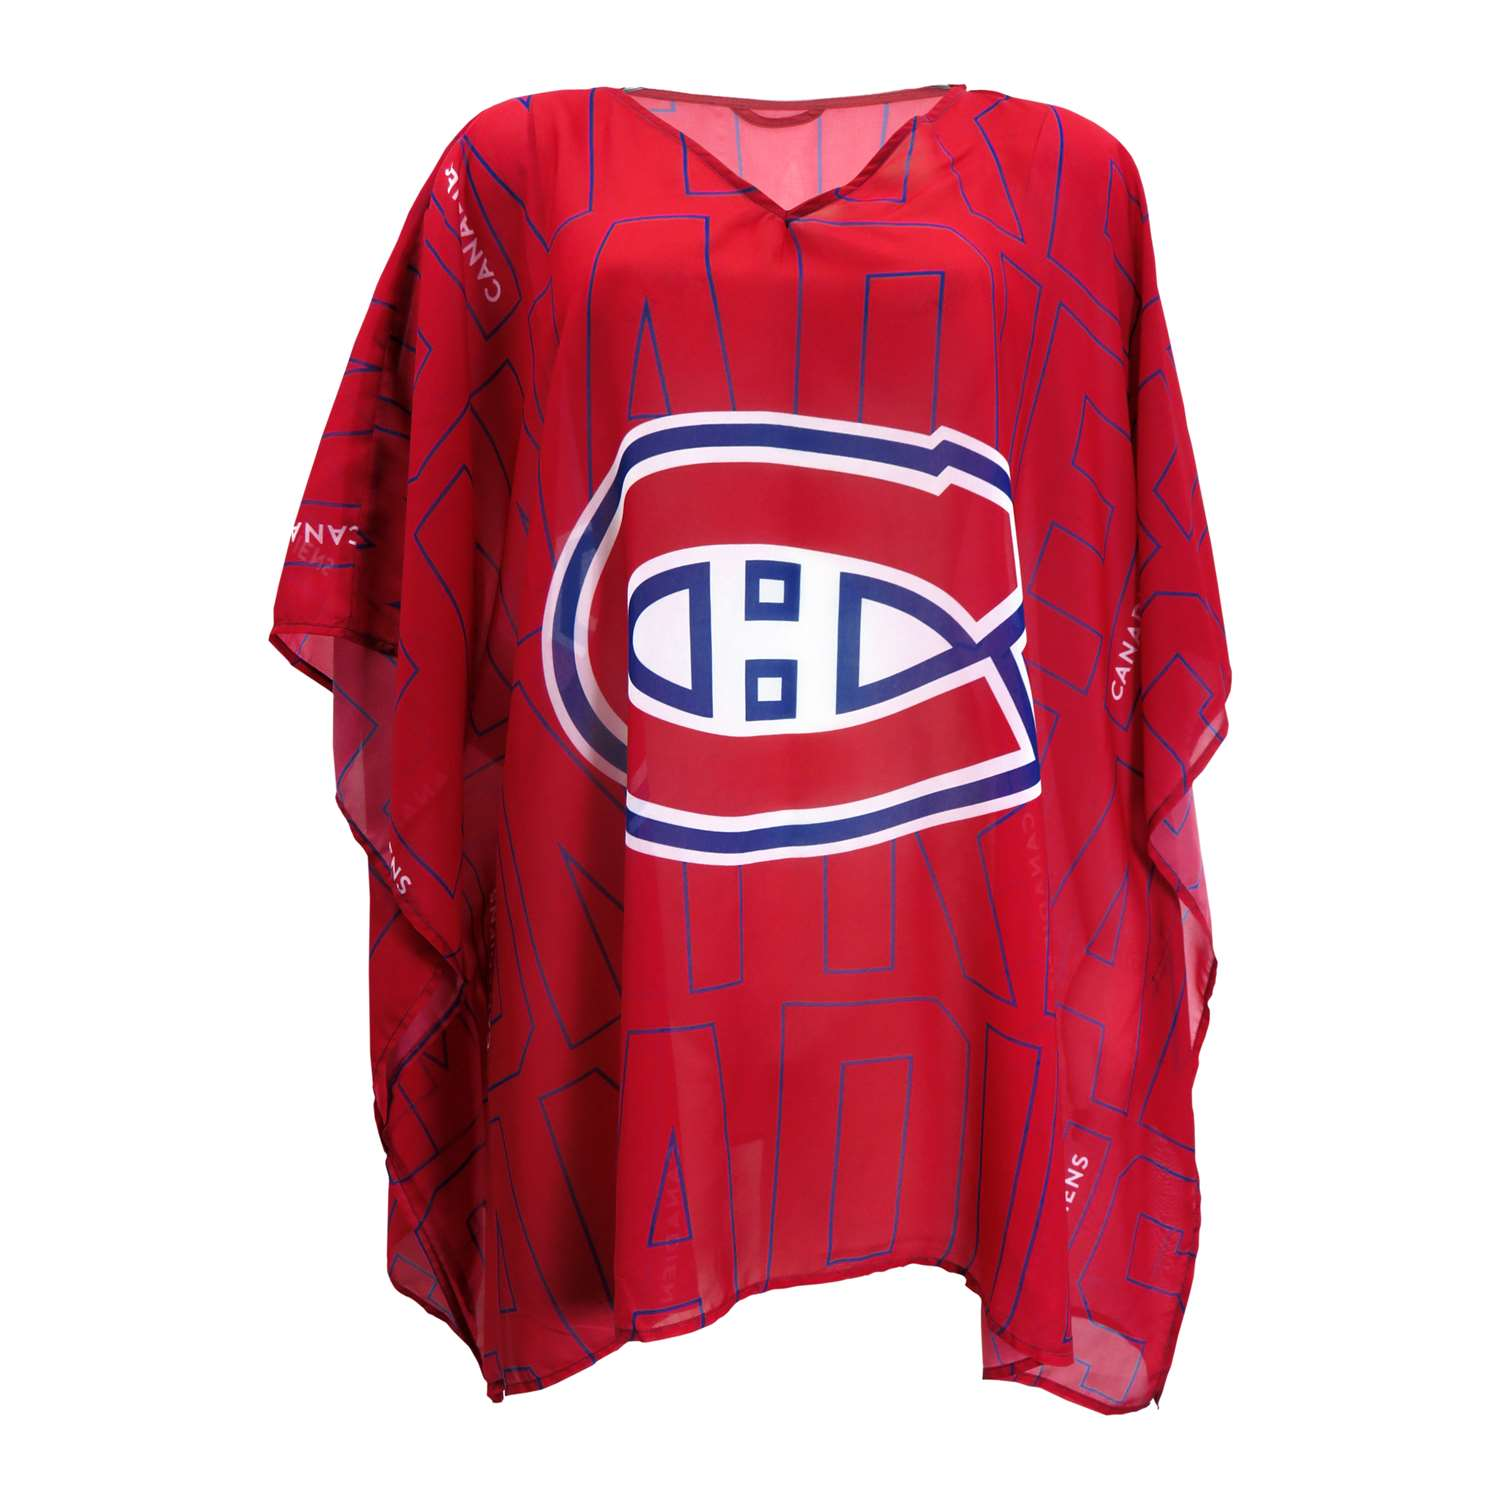 Montreal Canadiens Caftan Trace - 500627-cand-trace - Nhl Hockey Montreal Canadiens Bath 500627-CAND-TRACE